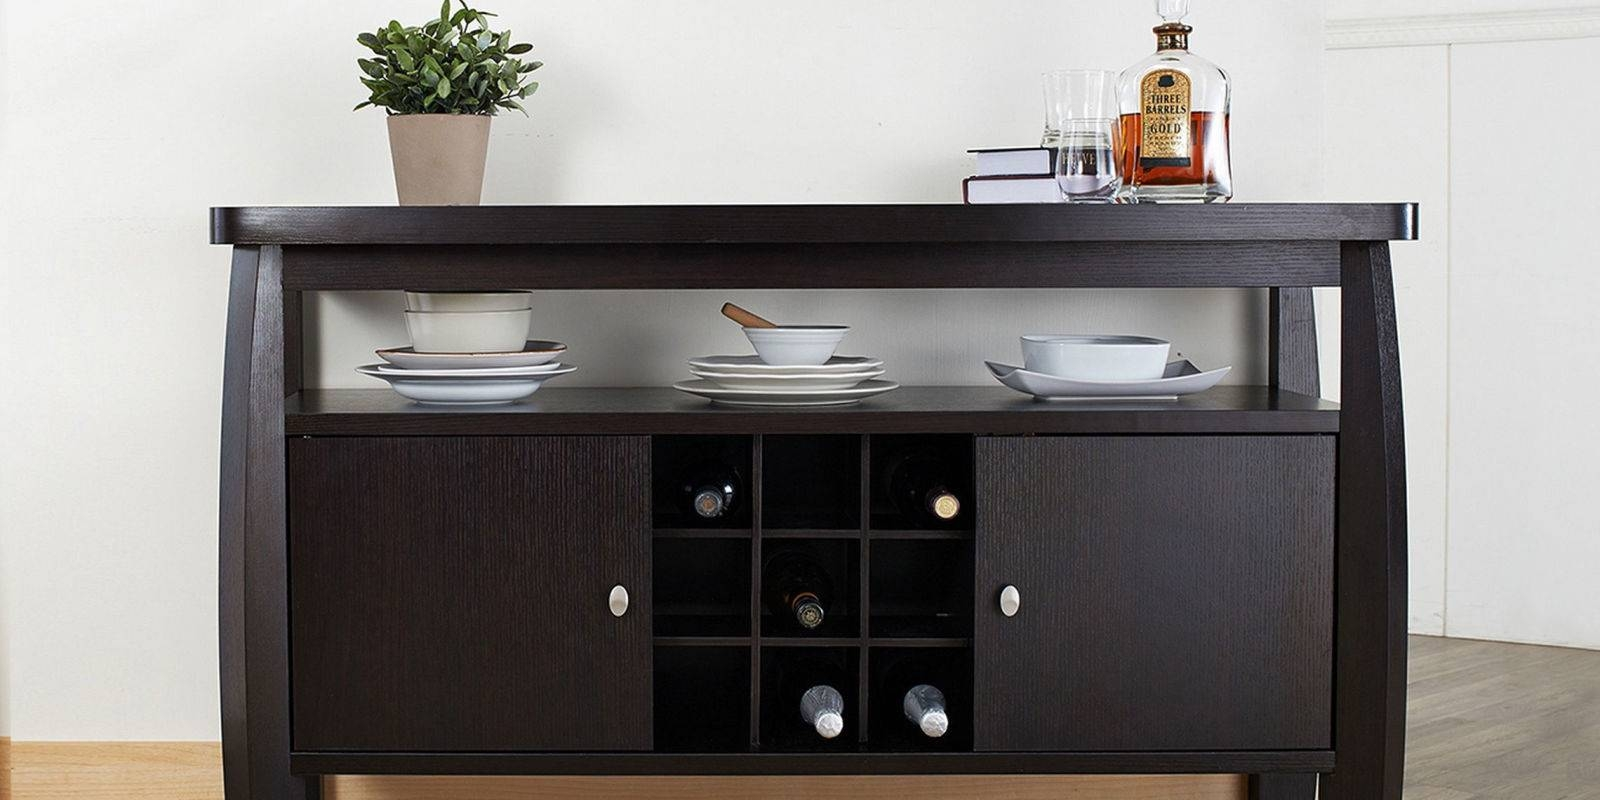 11 Best Sideboards And Buffets In 2018 - Reviews Of Sideboards within Dining Buffets And Sideboards (Image 1 of 15)